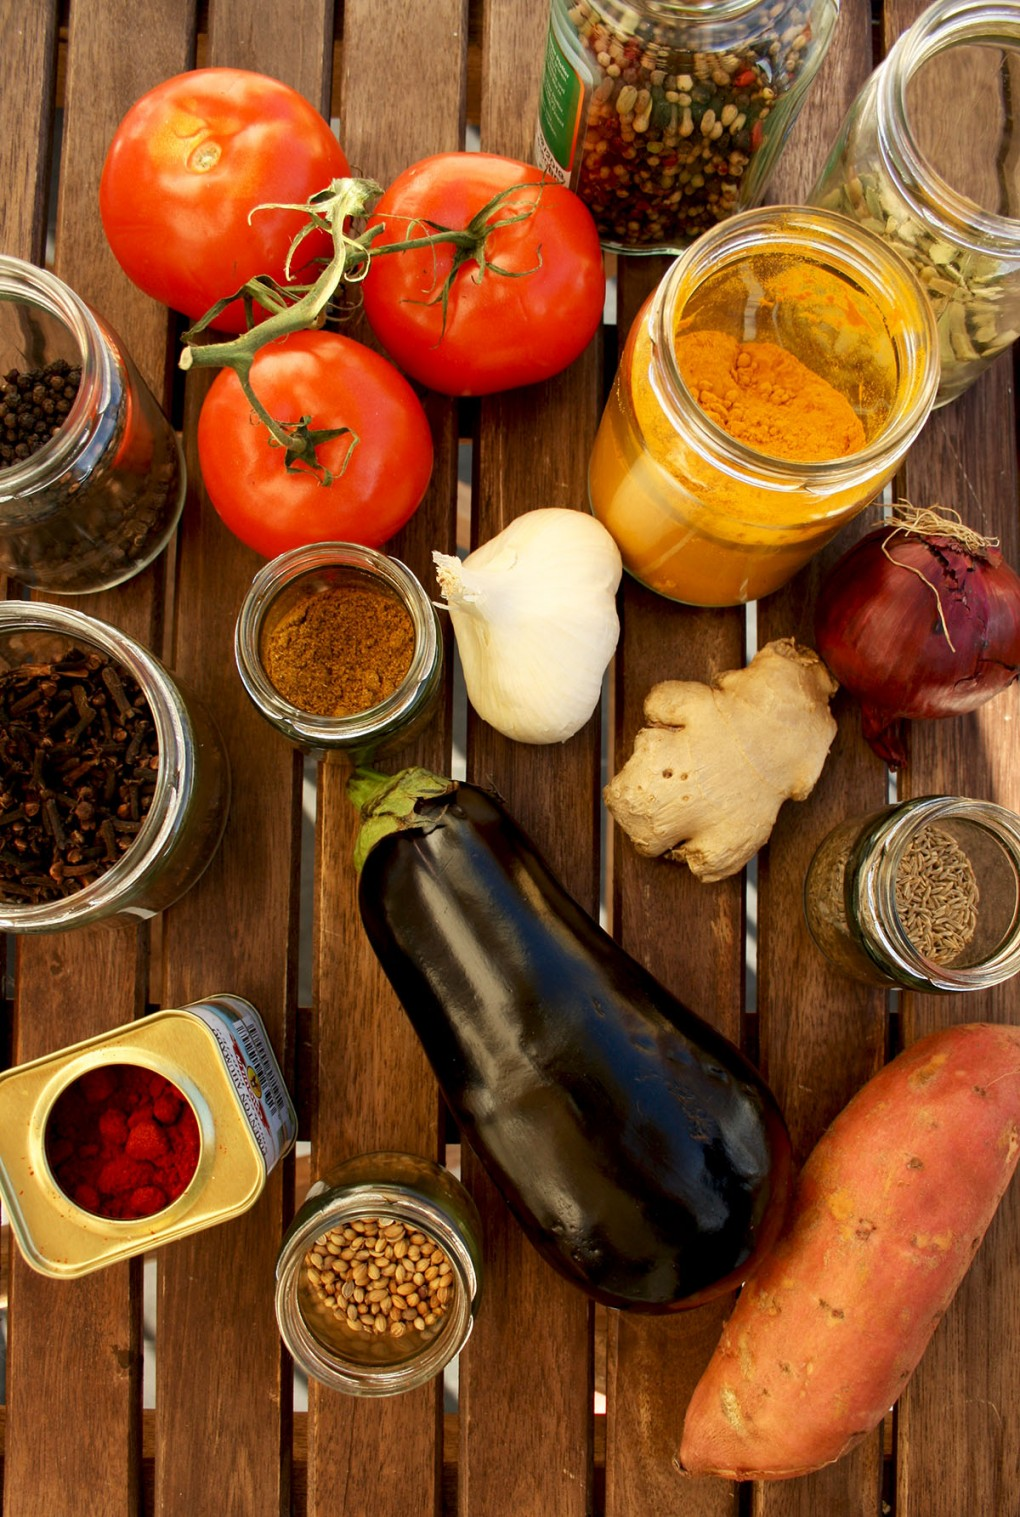 Ingredients for Roasted Eggplant Sweet Potato Curry